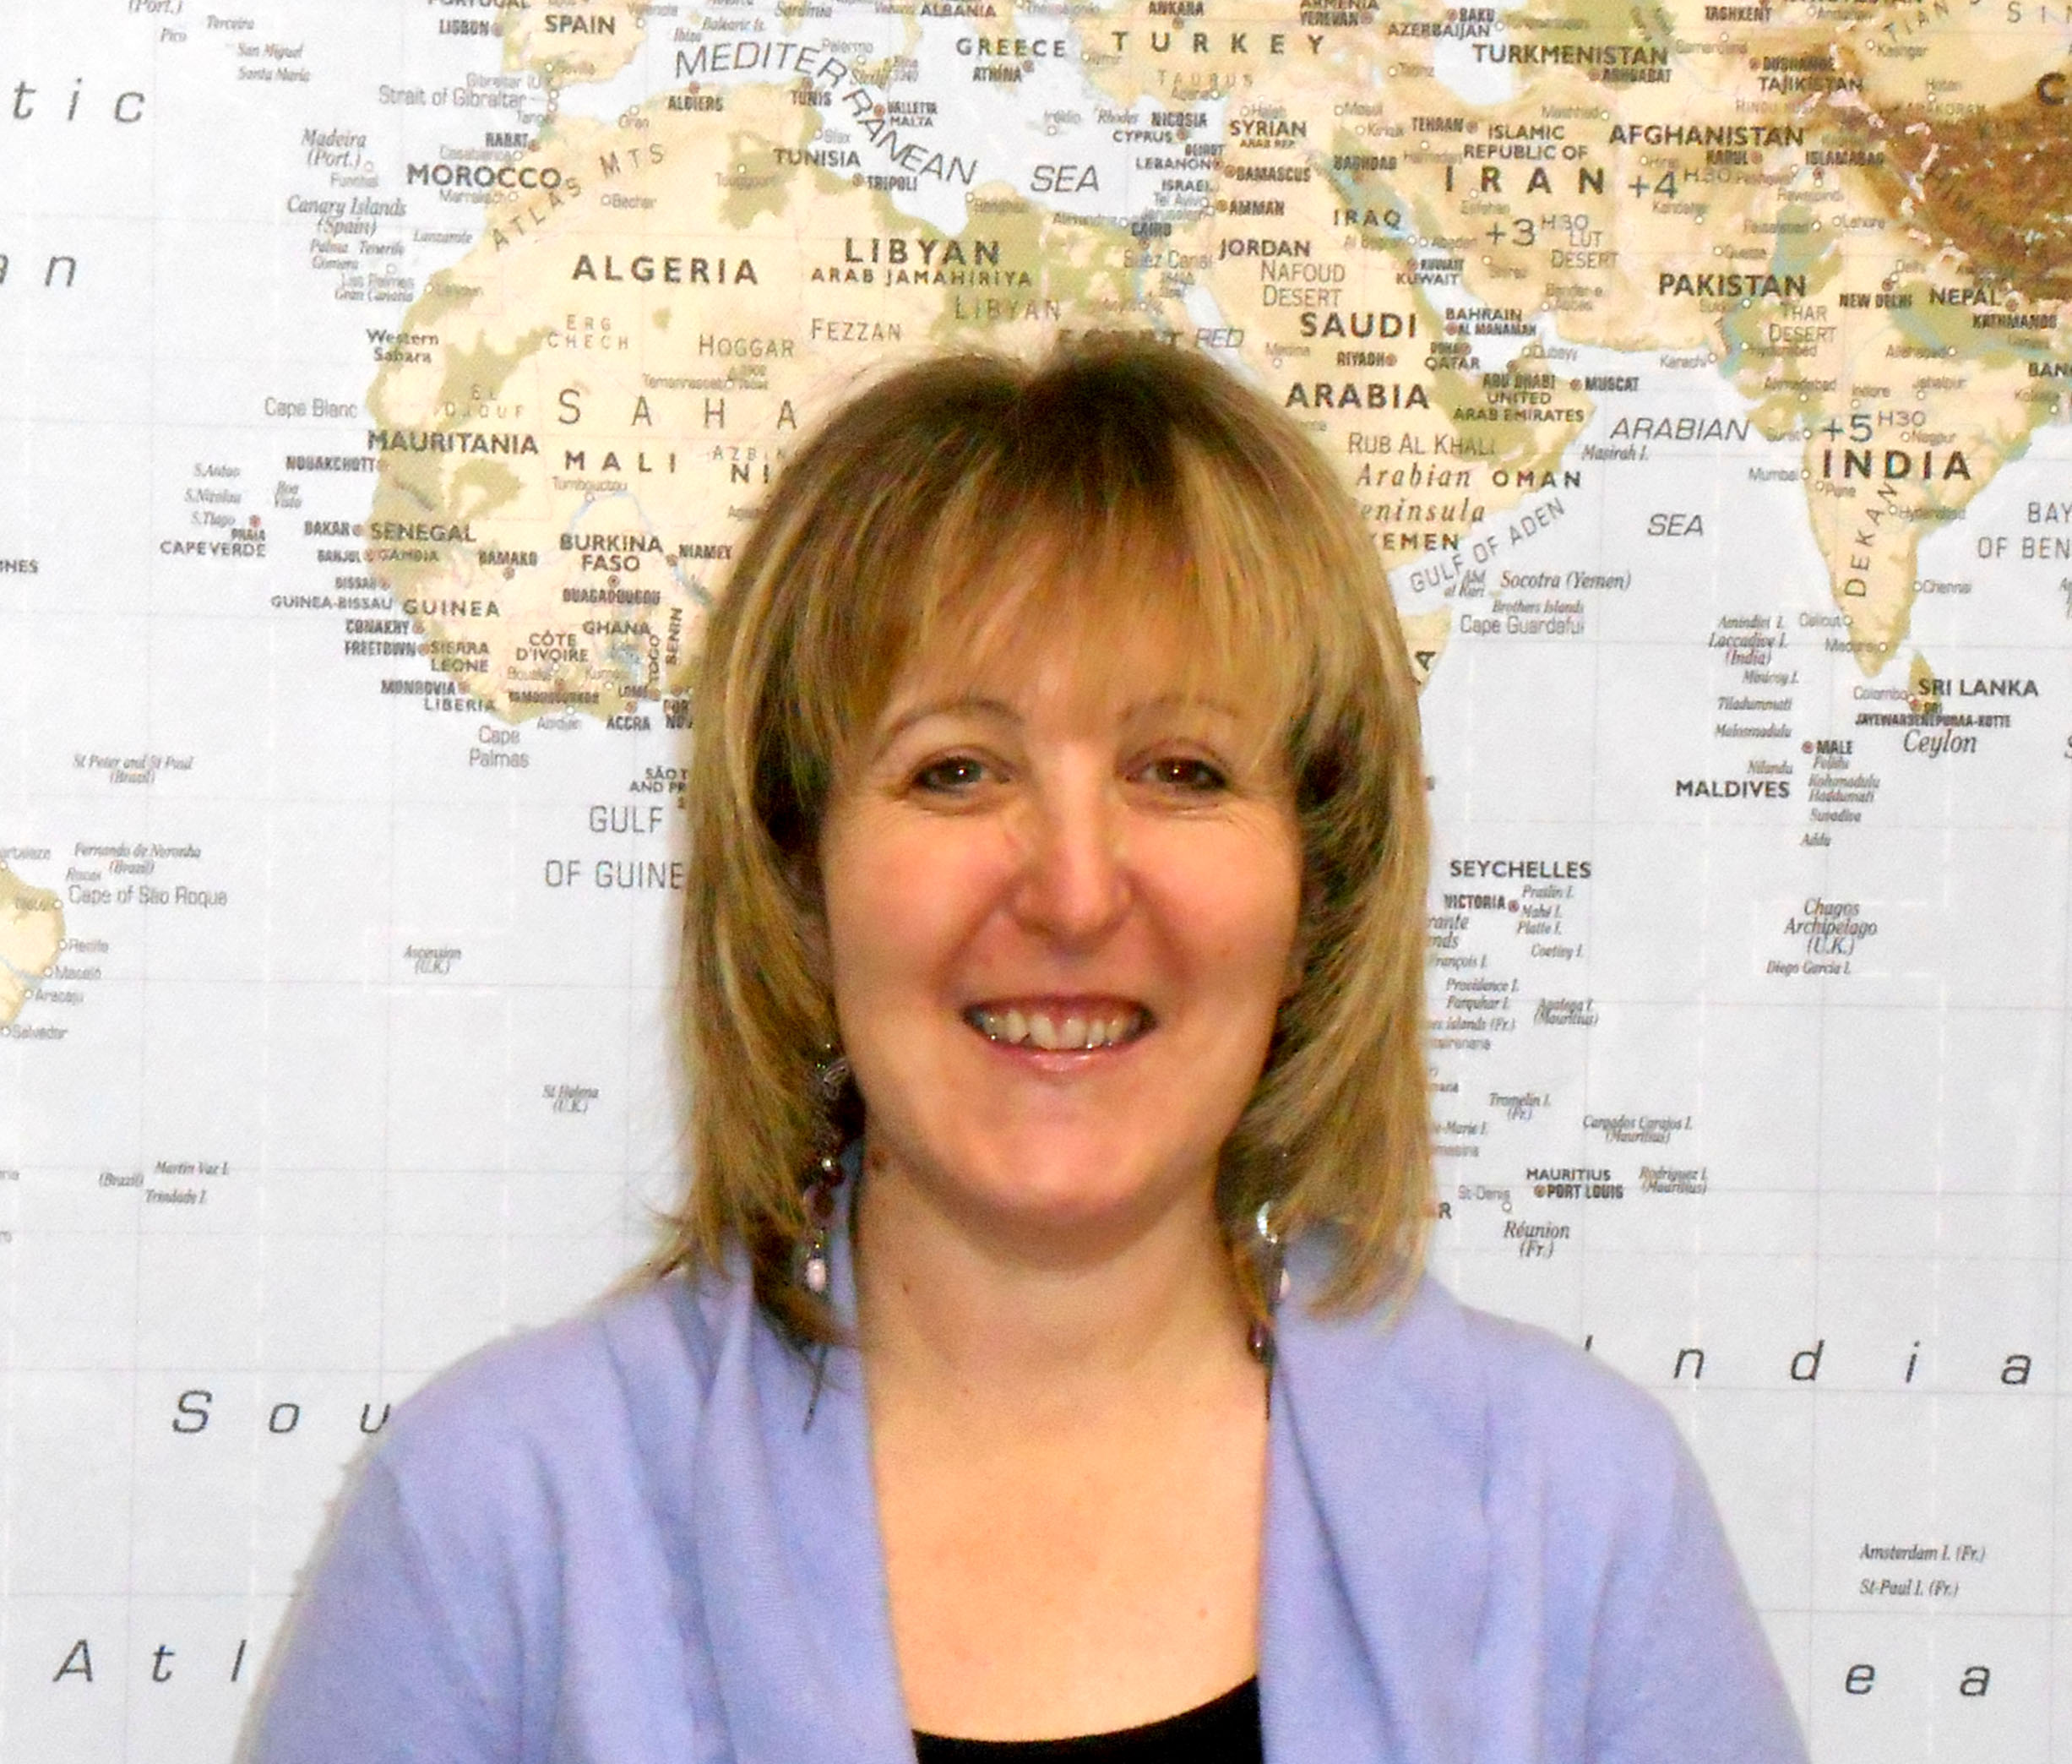 ATC member reaches final of leading Market Research Awards